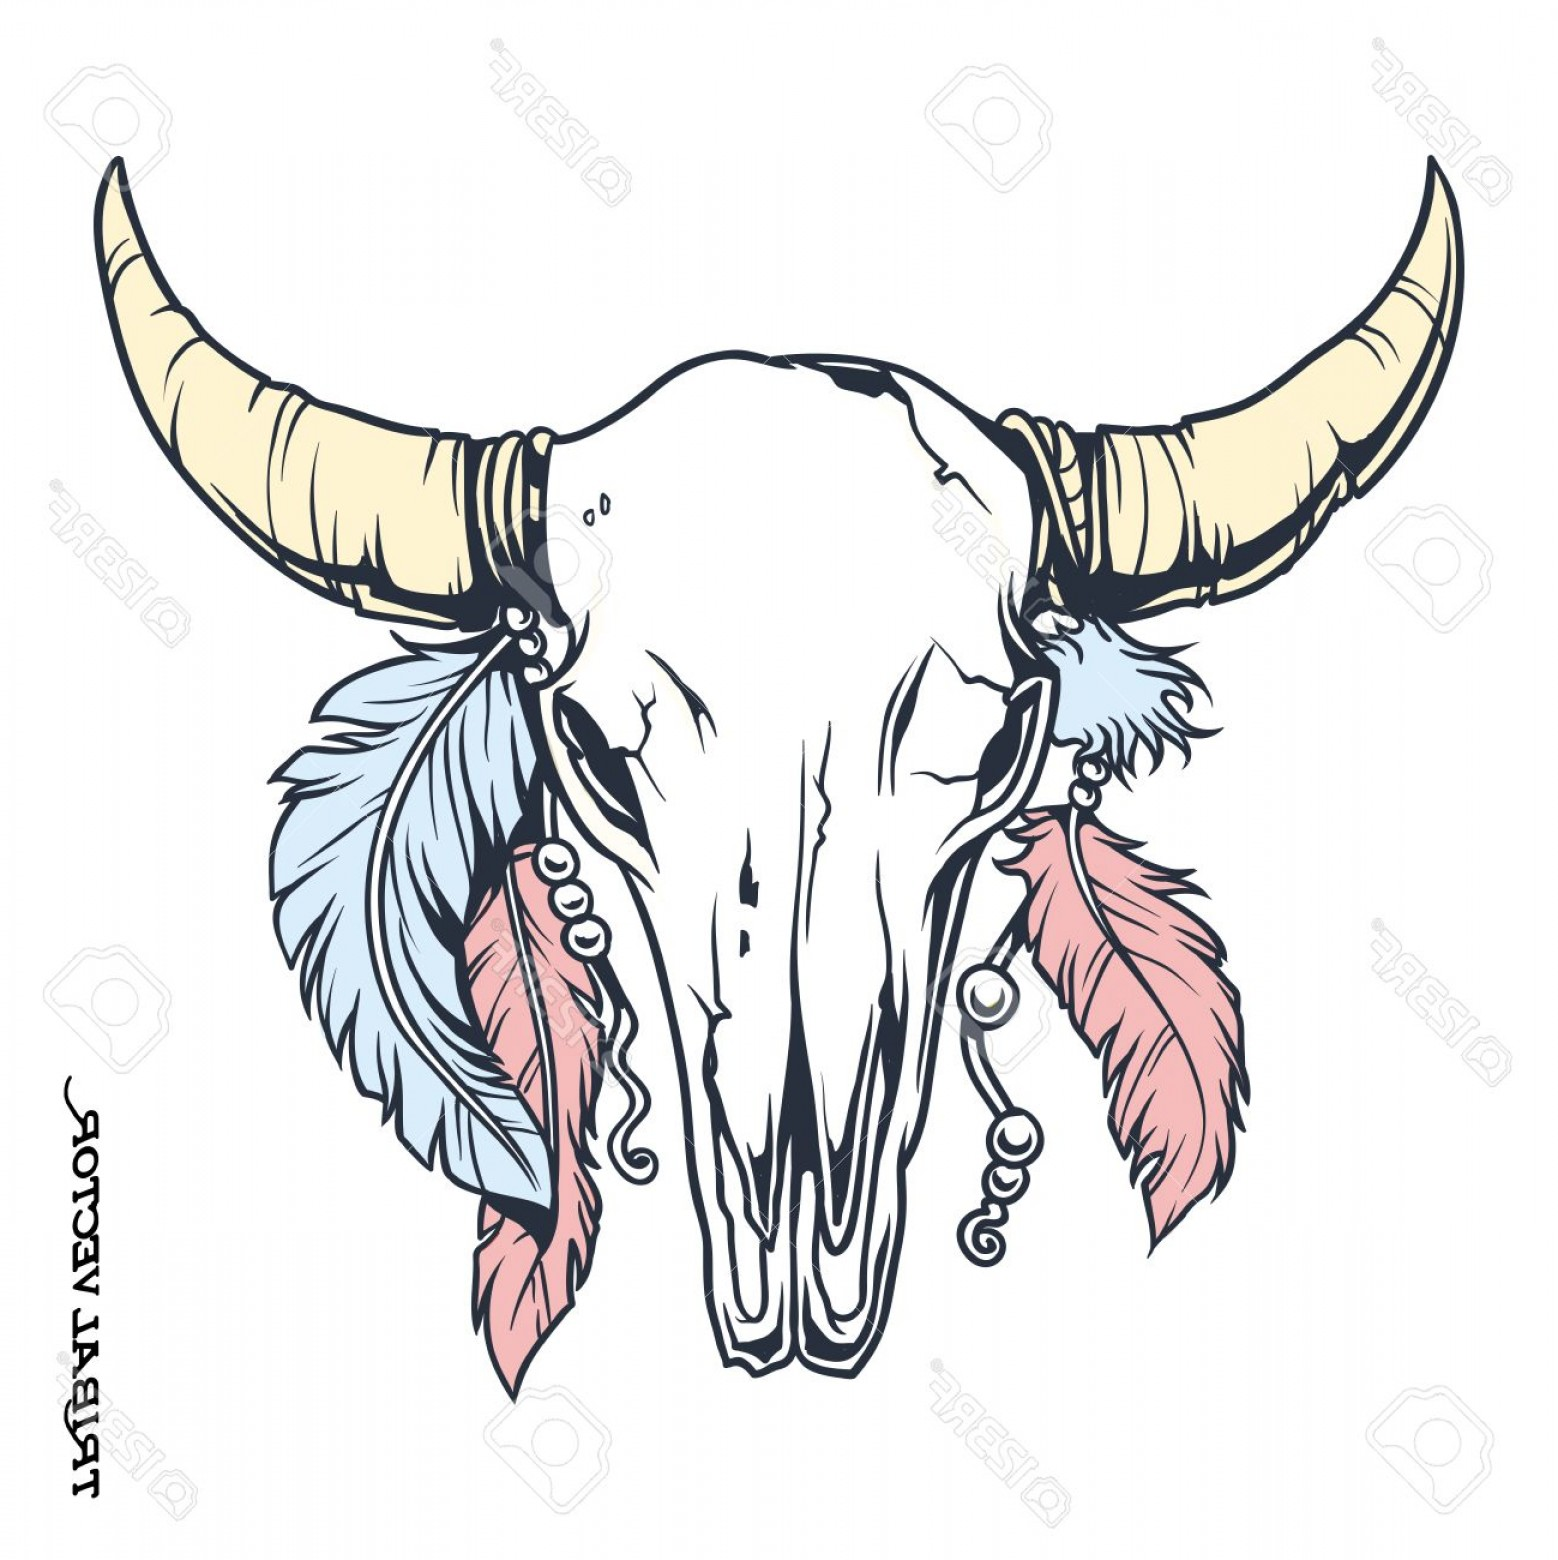 Longhorn Skull Vector: Photostock Vector Vector Tattoo Tribal Bull Skull With Feather Illustration